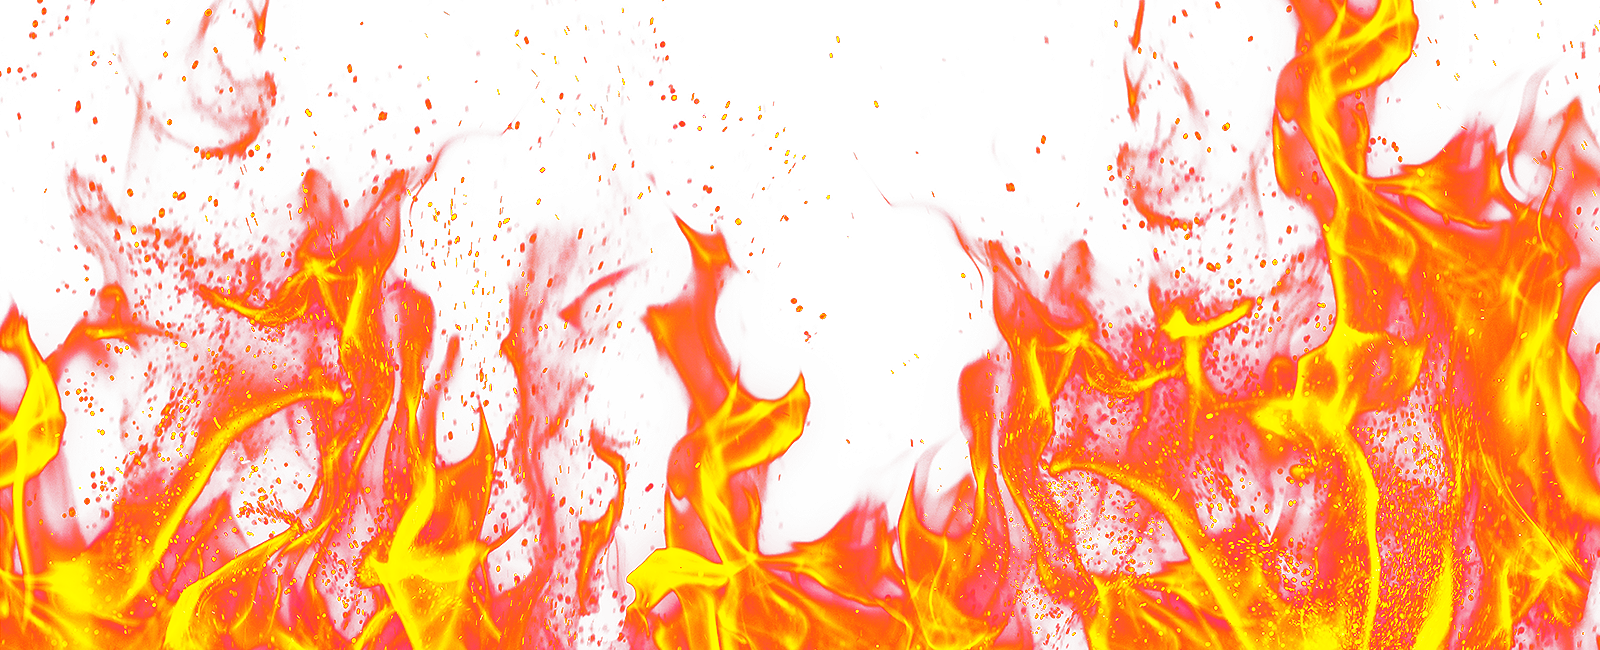 Flames clipart powerpoint. Fire icon transparentpng